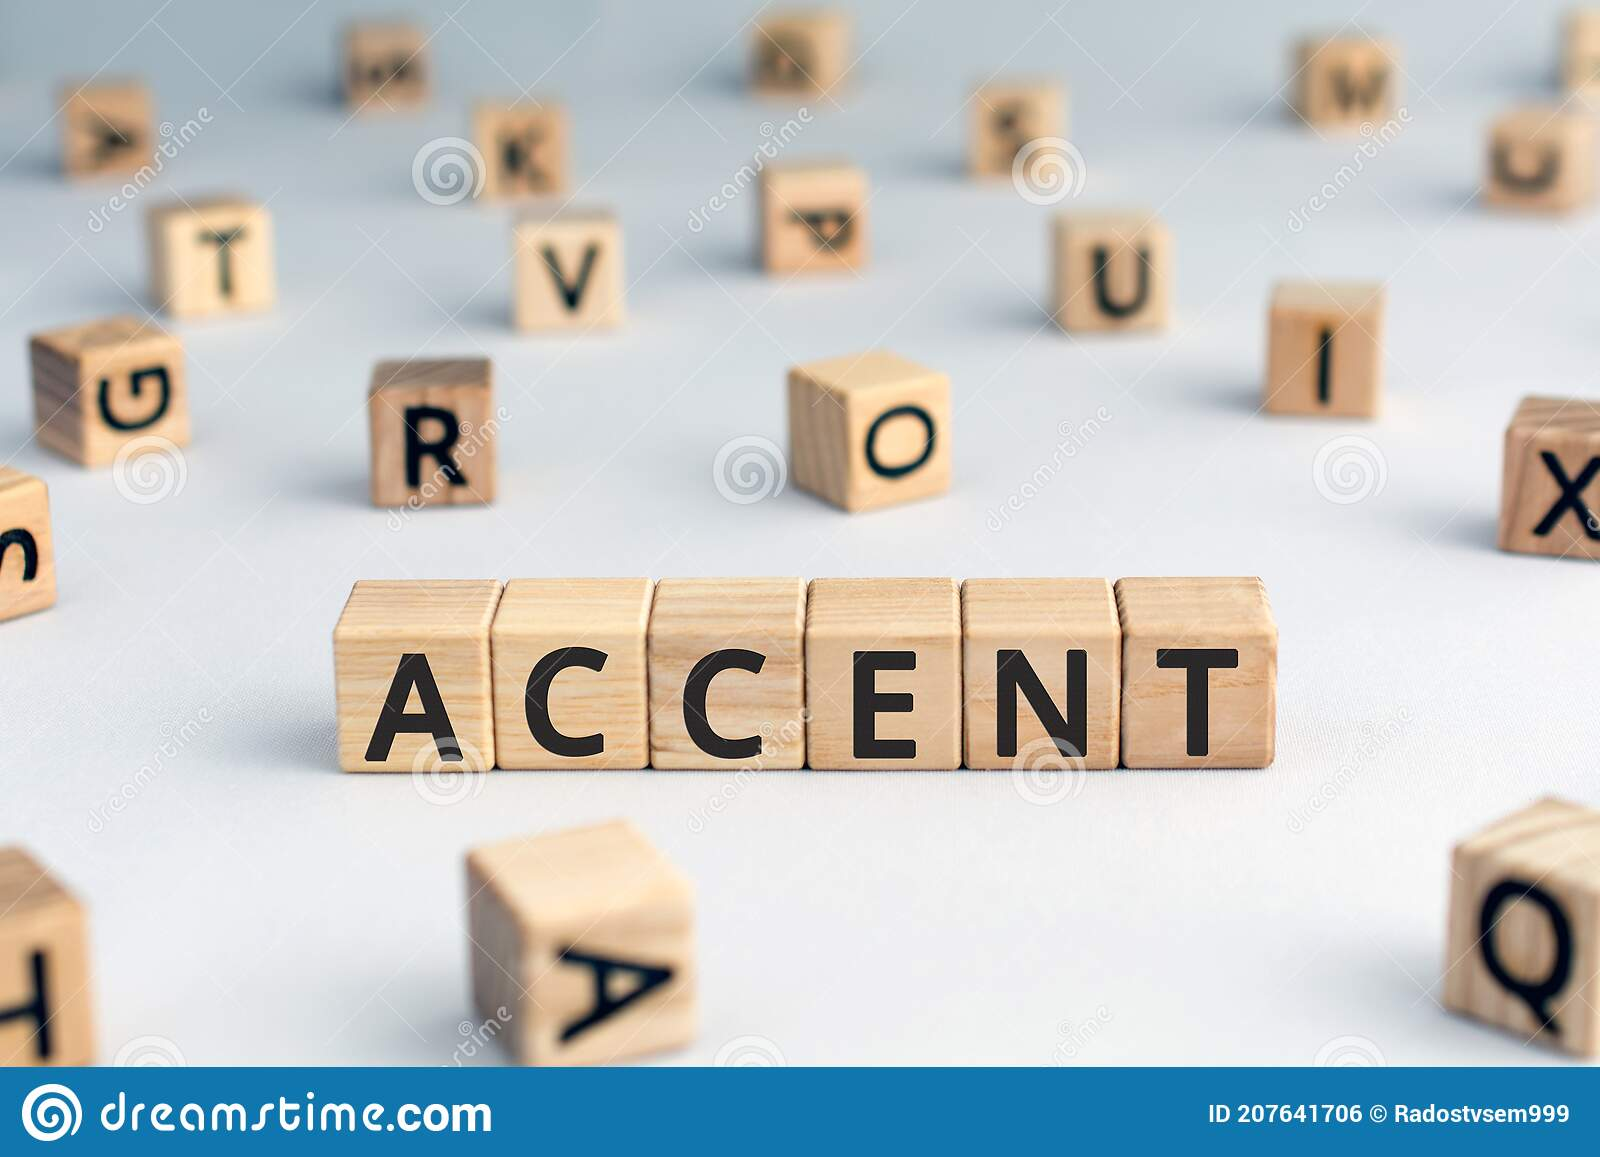 Accent - Word From Wooden Blocks With Letters Stock Photo - Image